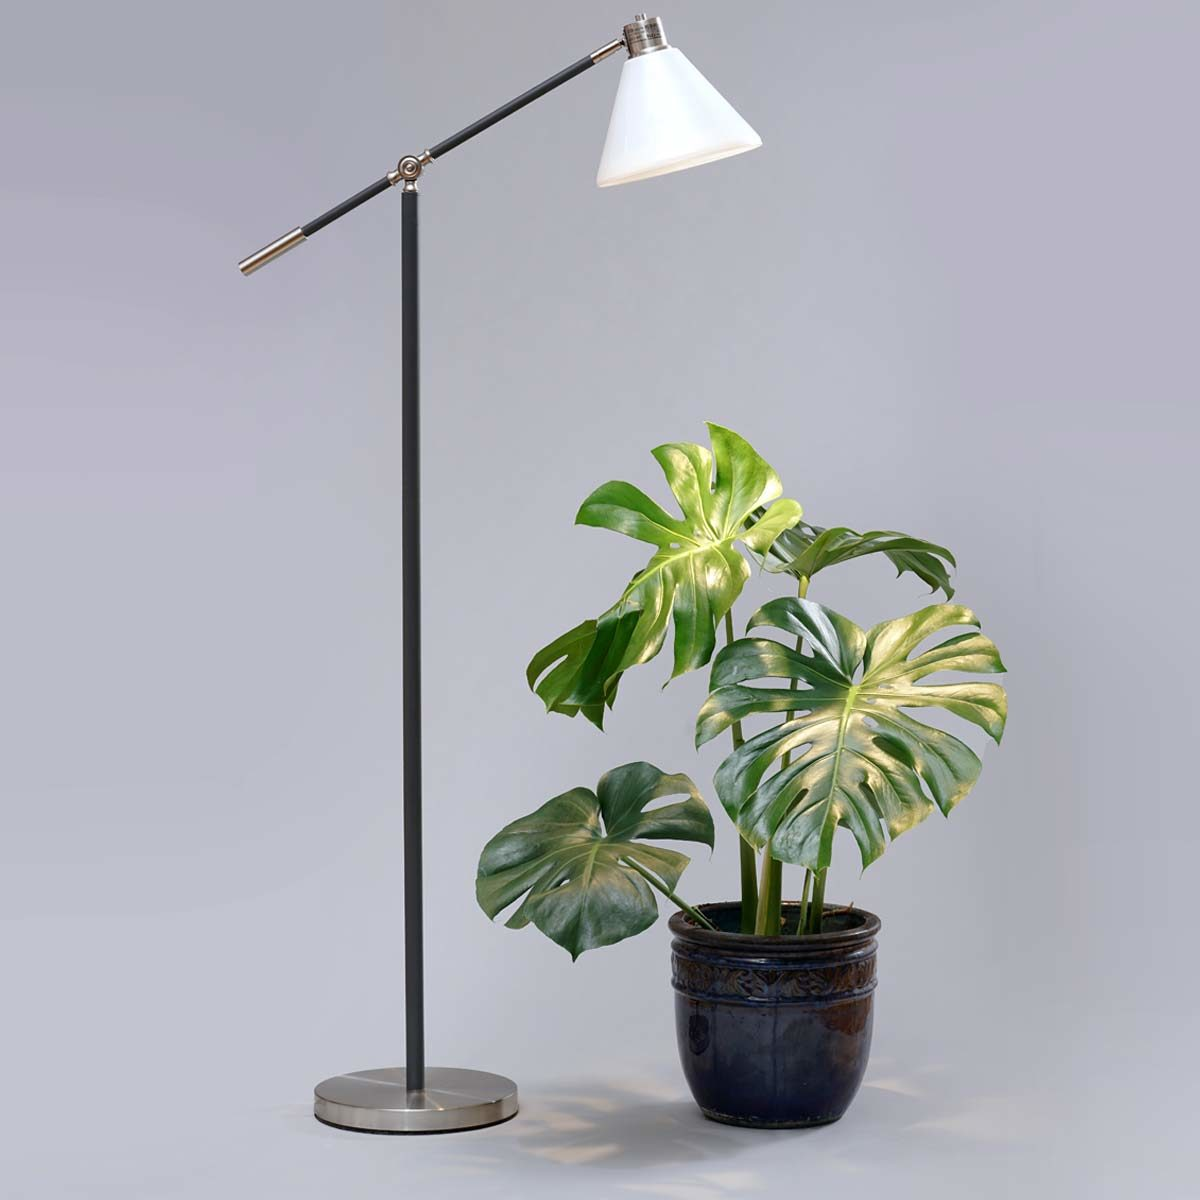 Standing-Lamp-Shade-Monsterajpg